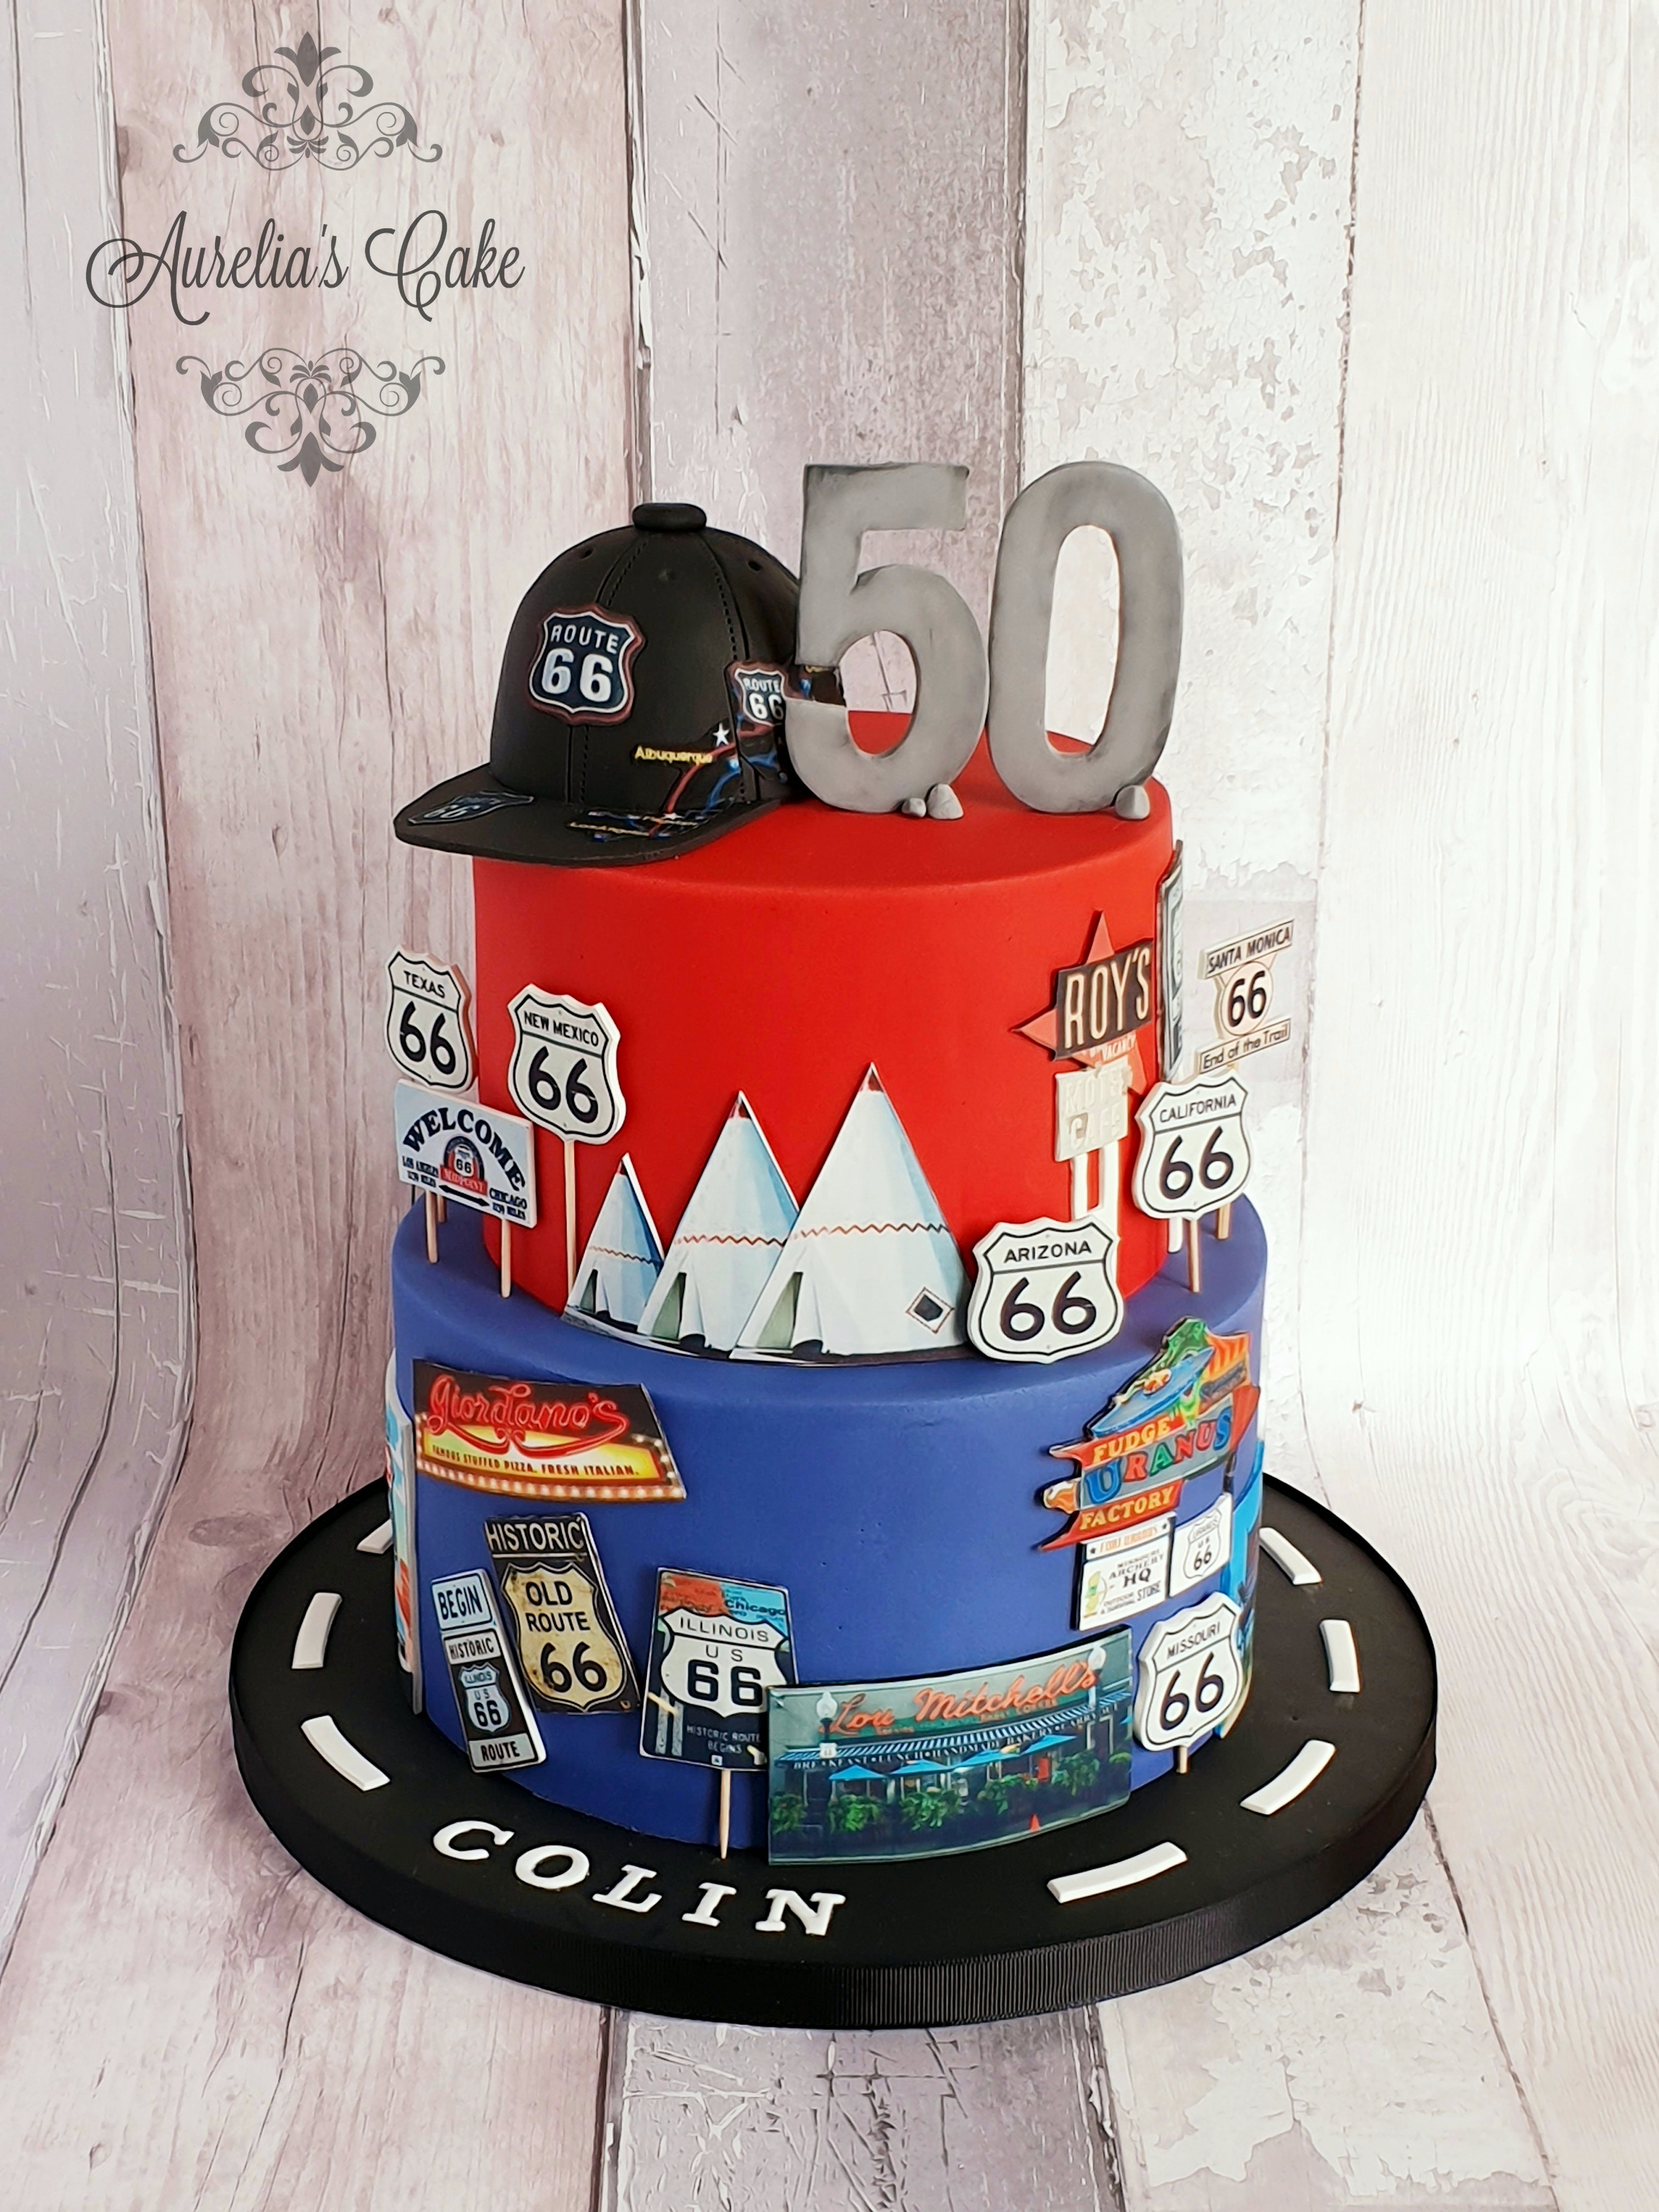 Cake route 66